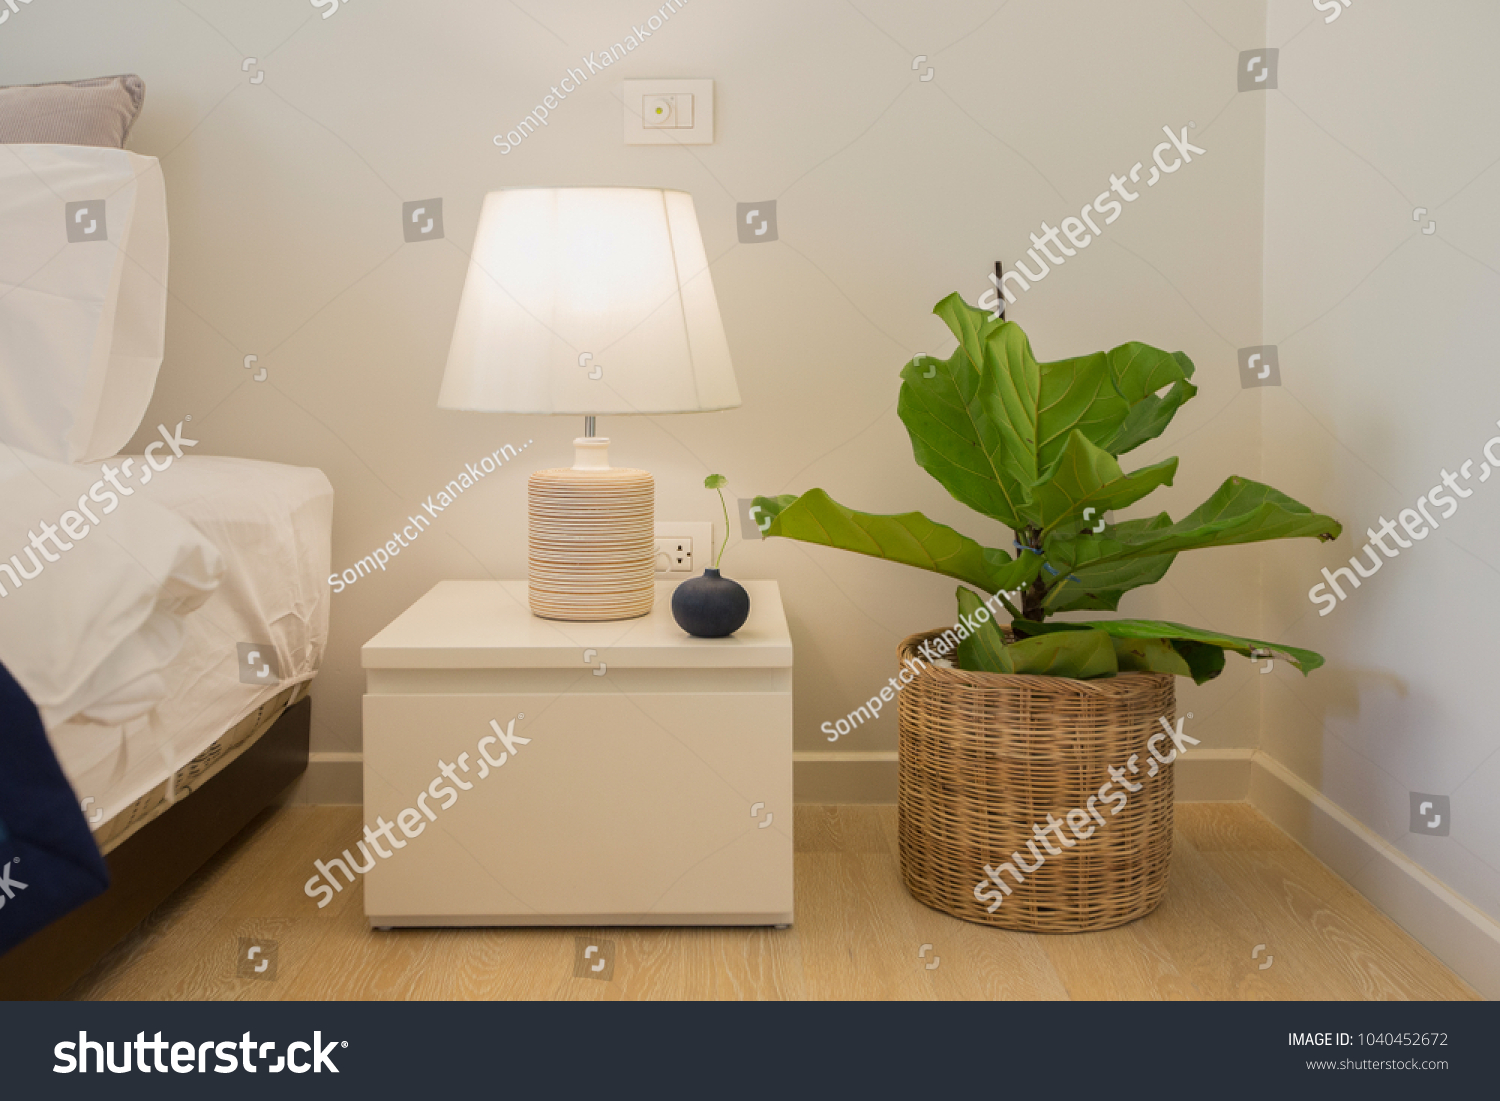 Lamp On Bedside Table Plant Pot Stock Photo Edit Now 1040452672